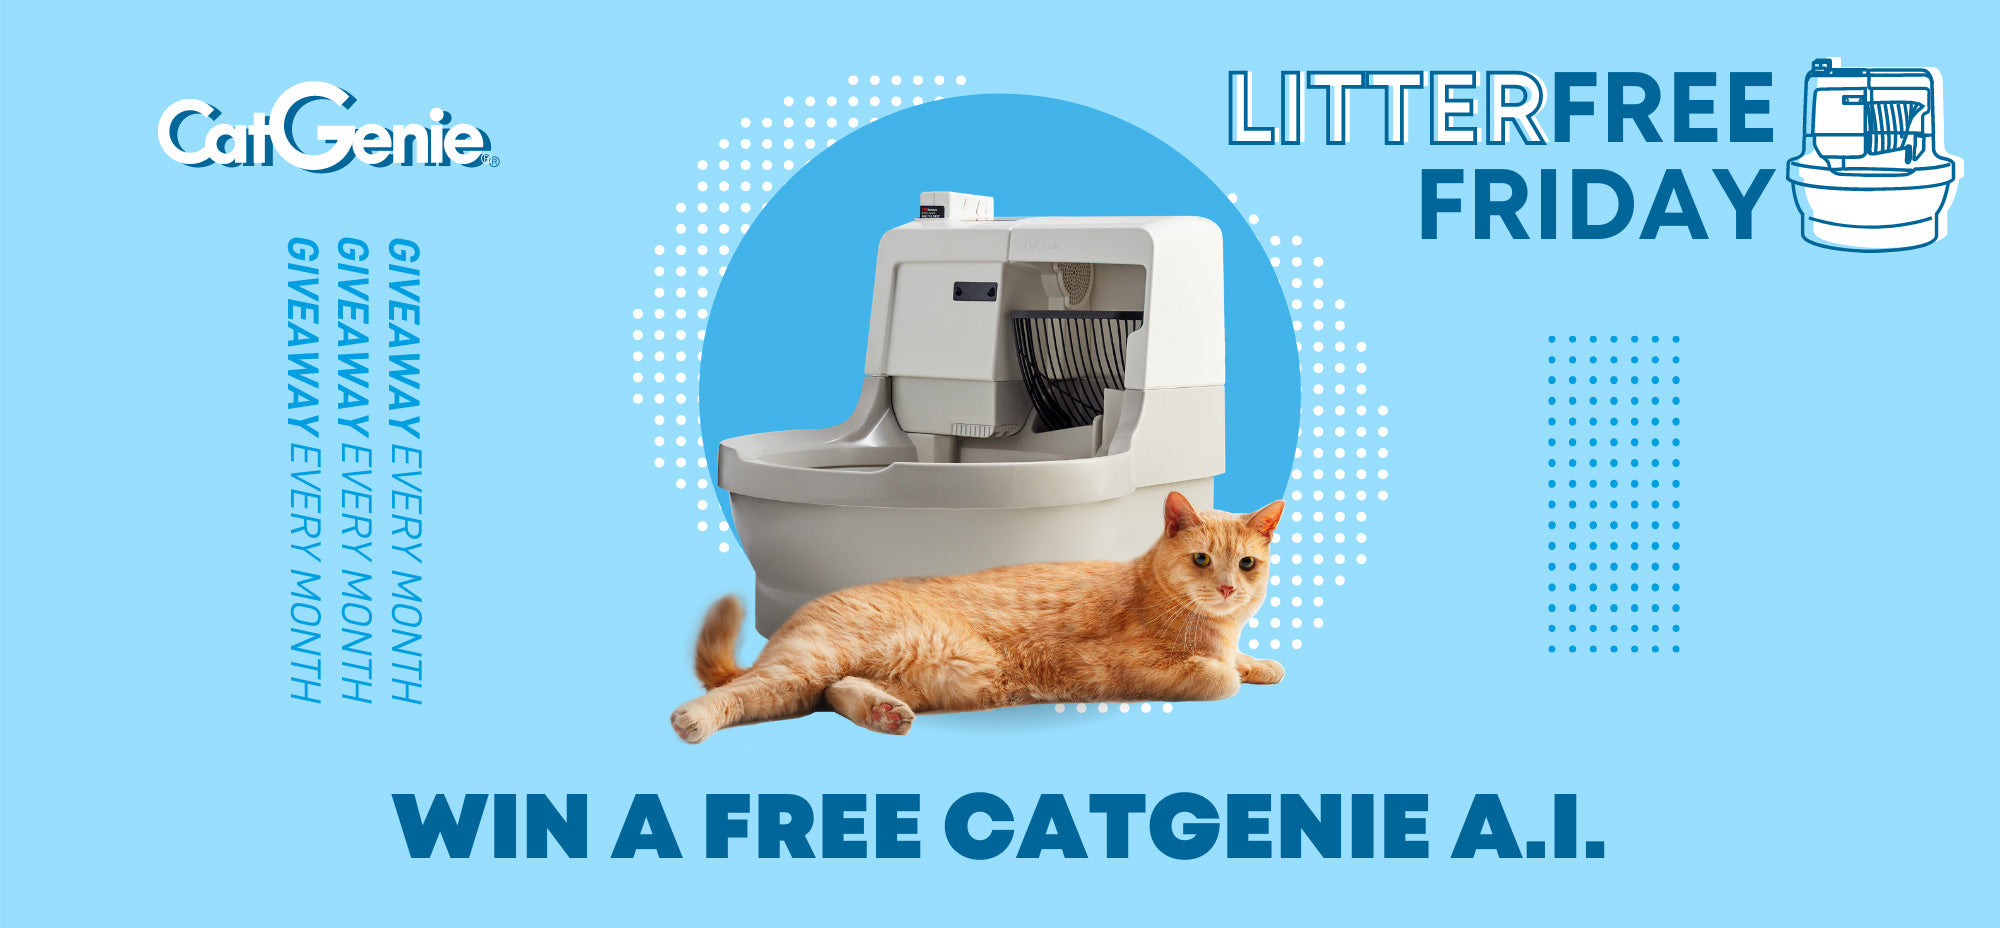 CatGenie LitterFree Friday Giveaway Every Month Win a free CatGenie A.I.